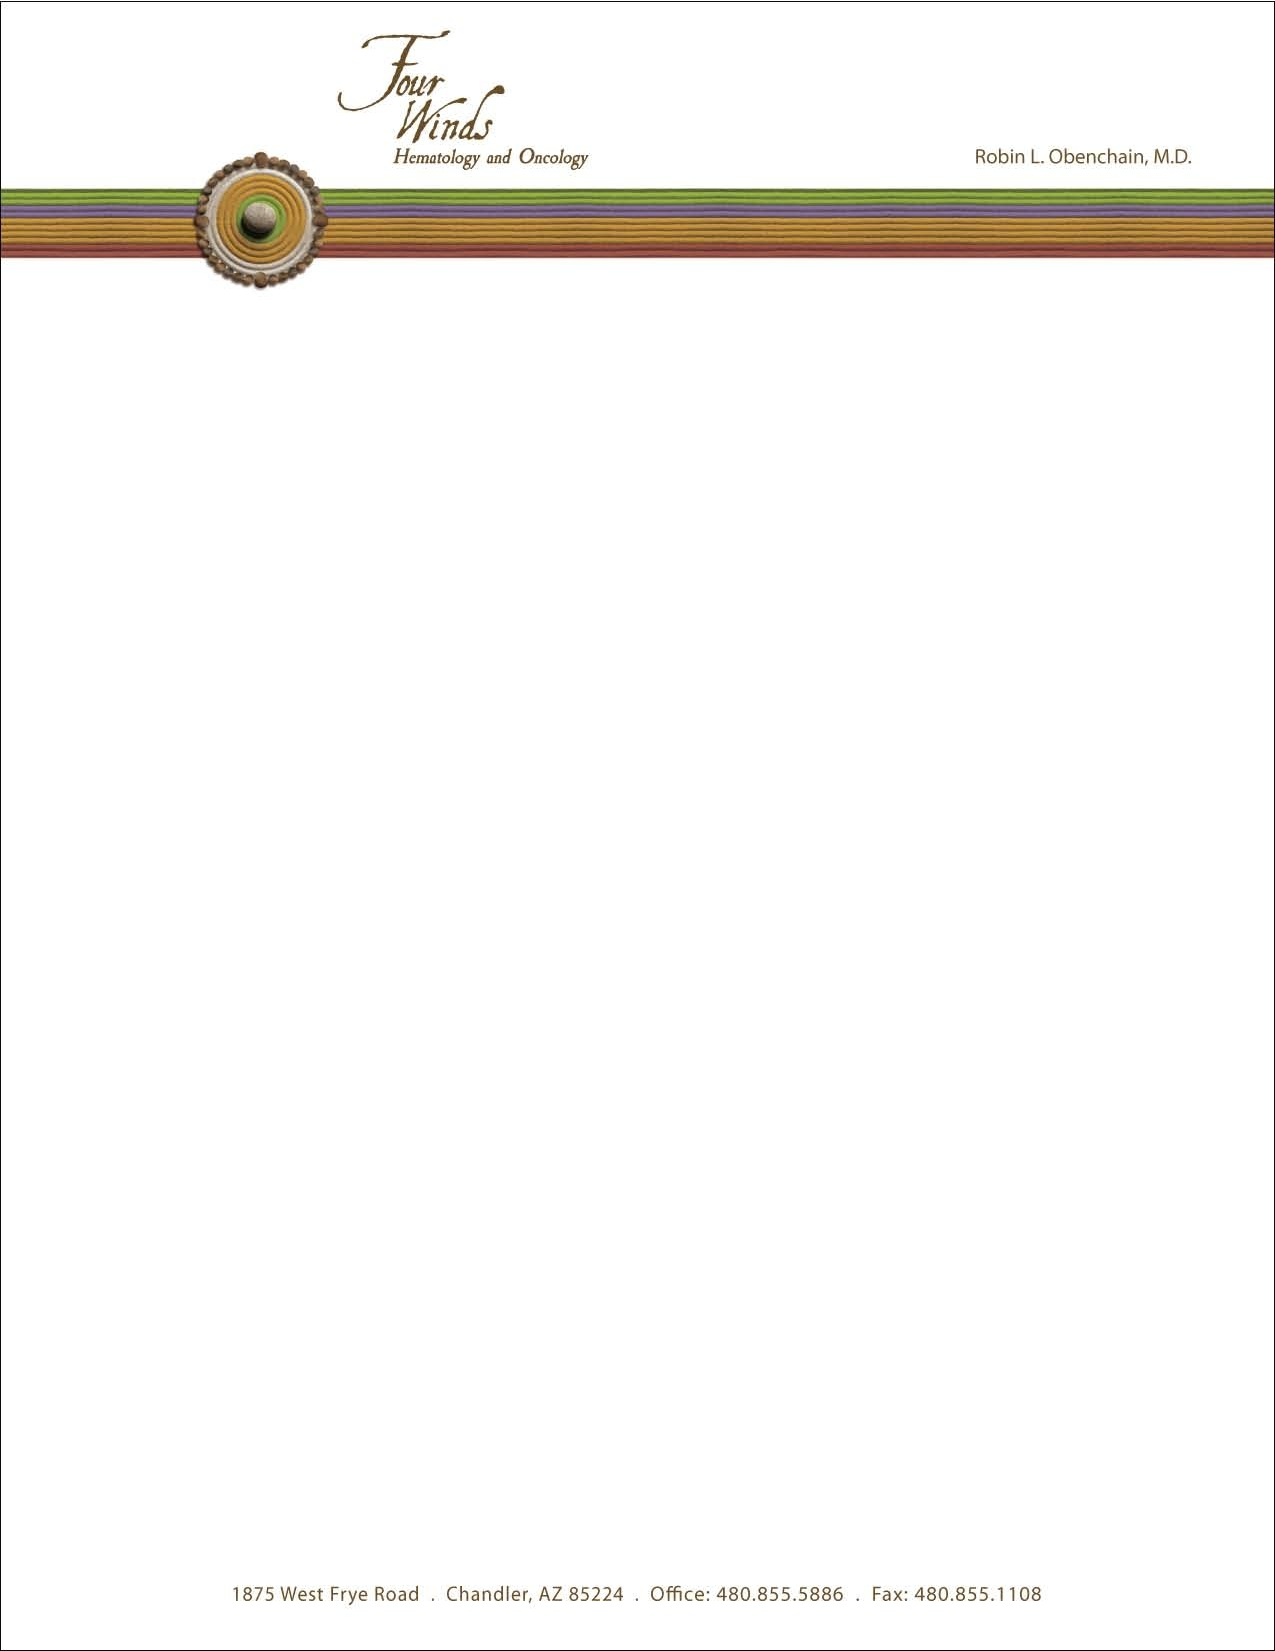 Four Winds Letterhead Final